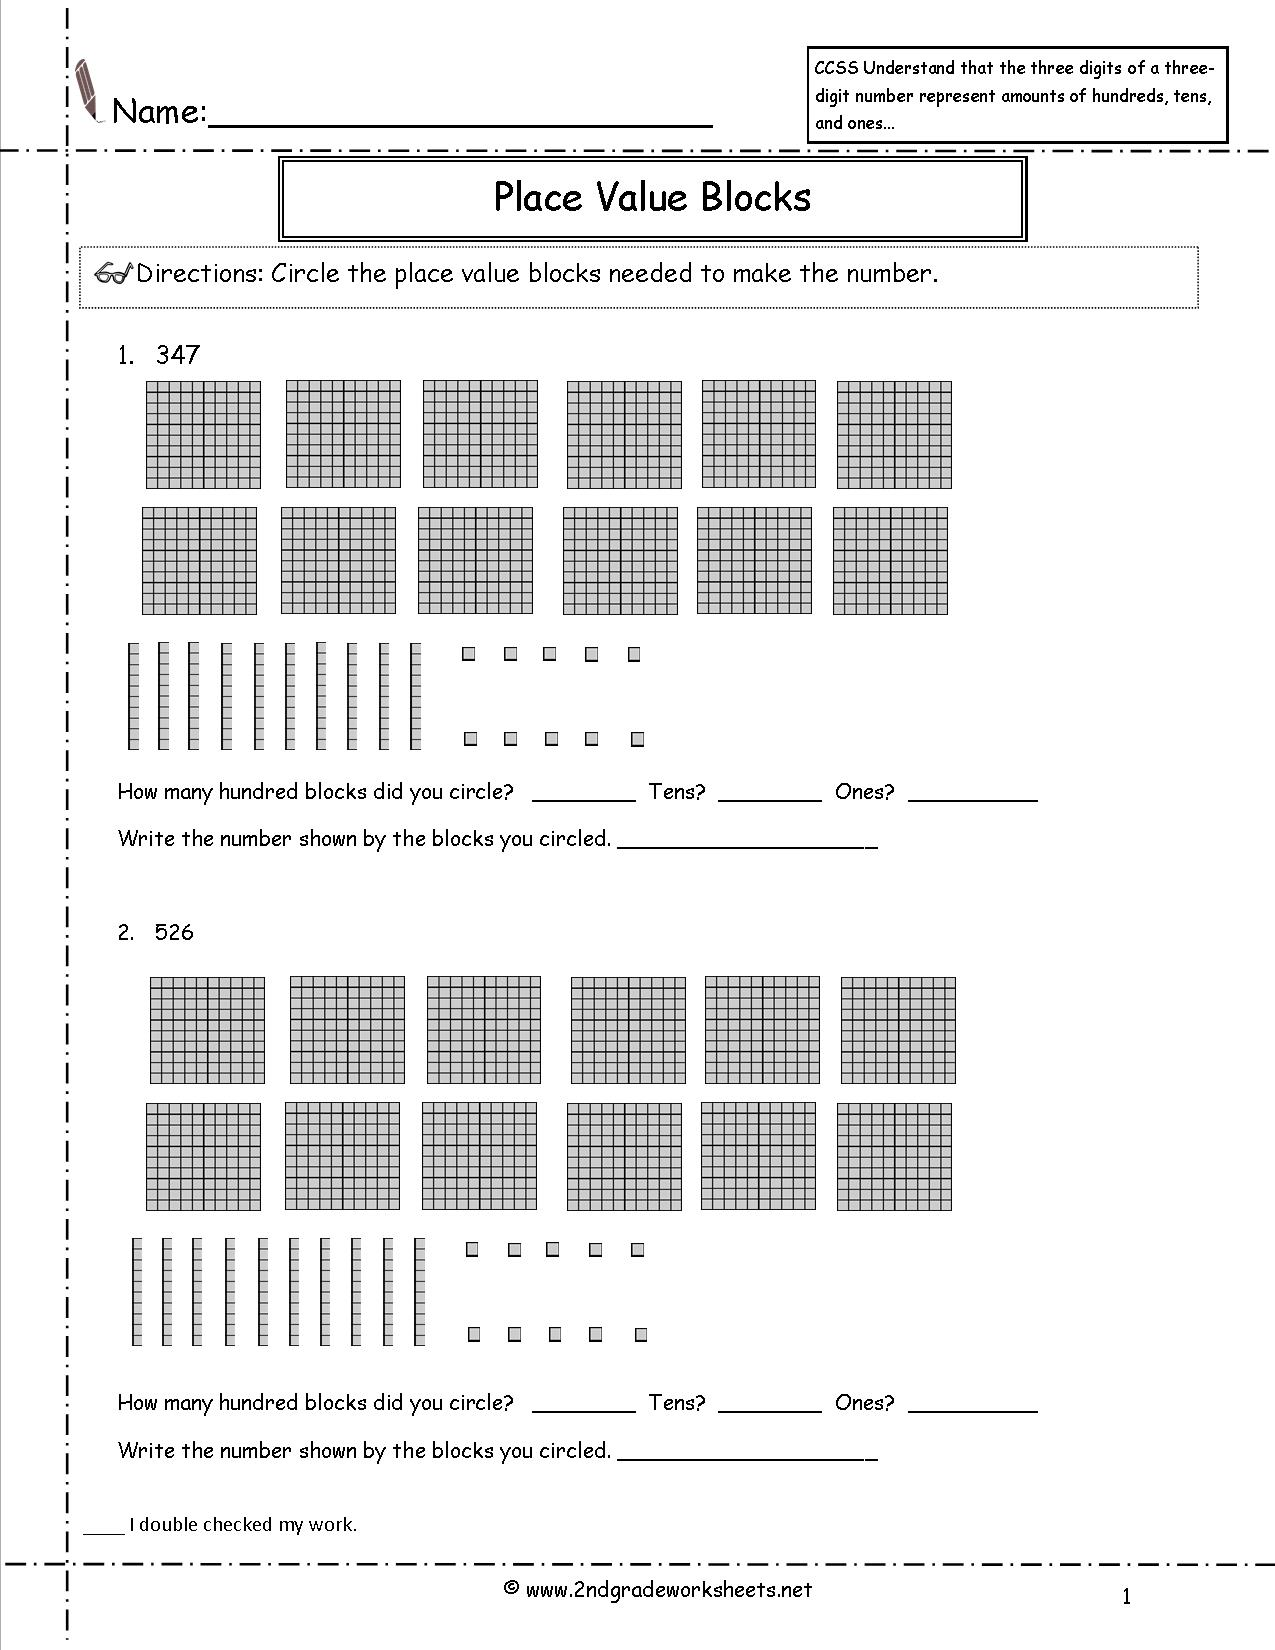 17 Best Images Of Grouping Objects Worksheets